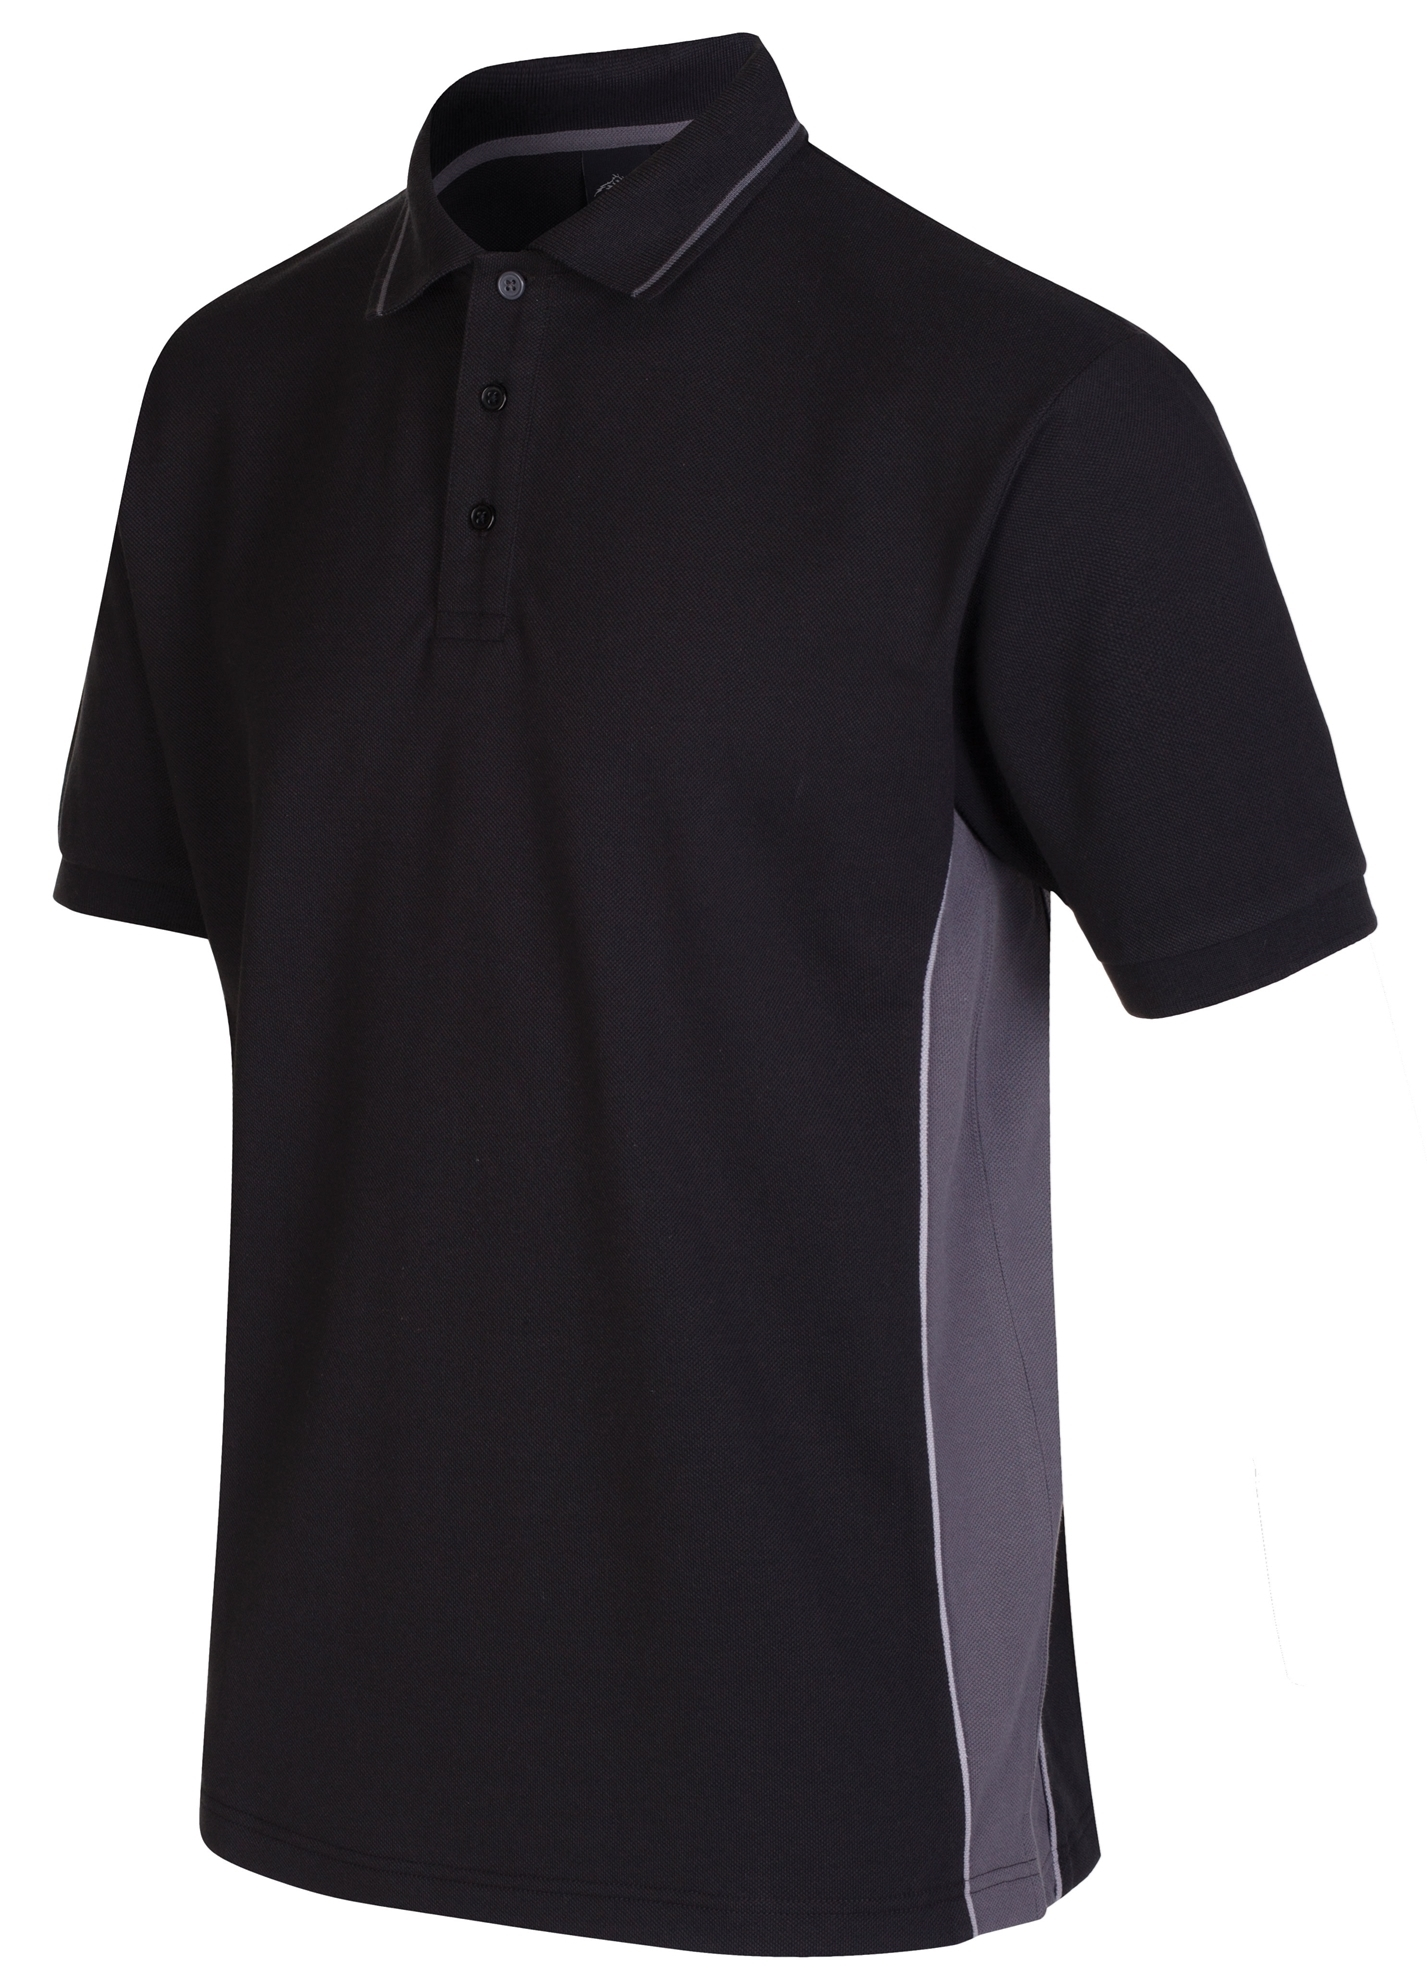 Picture of Gryzko Unisex Contrast Polo Shirt - Black/Grey